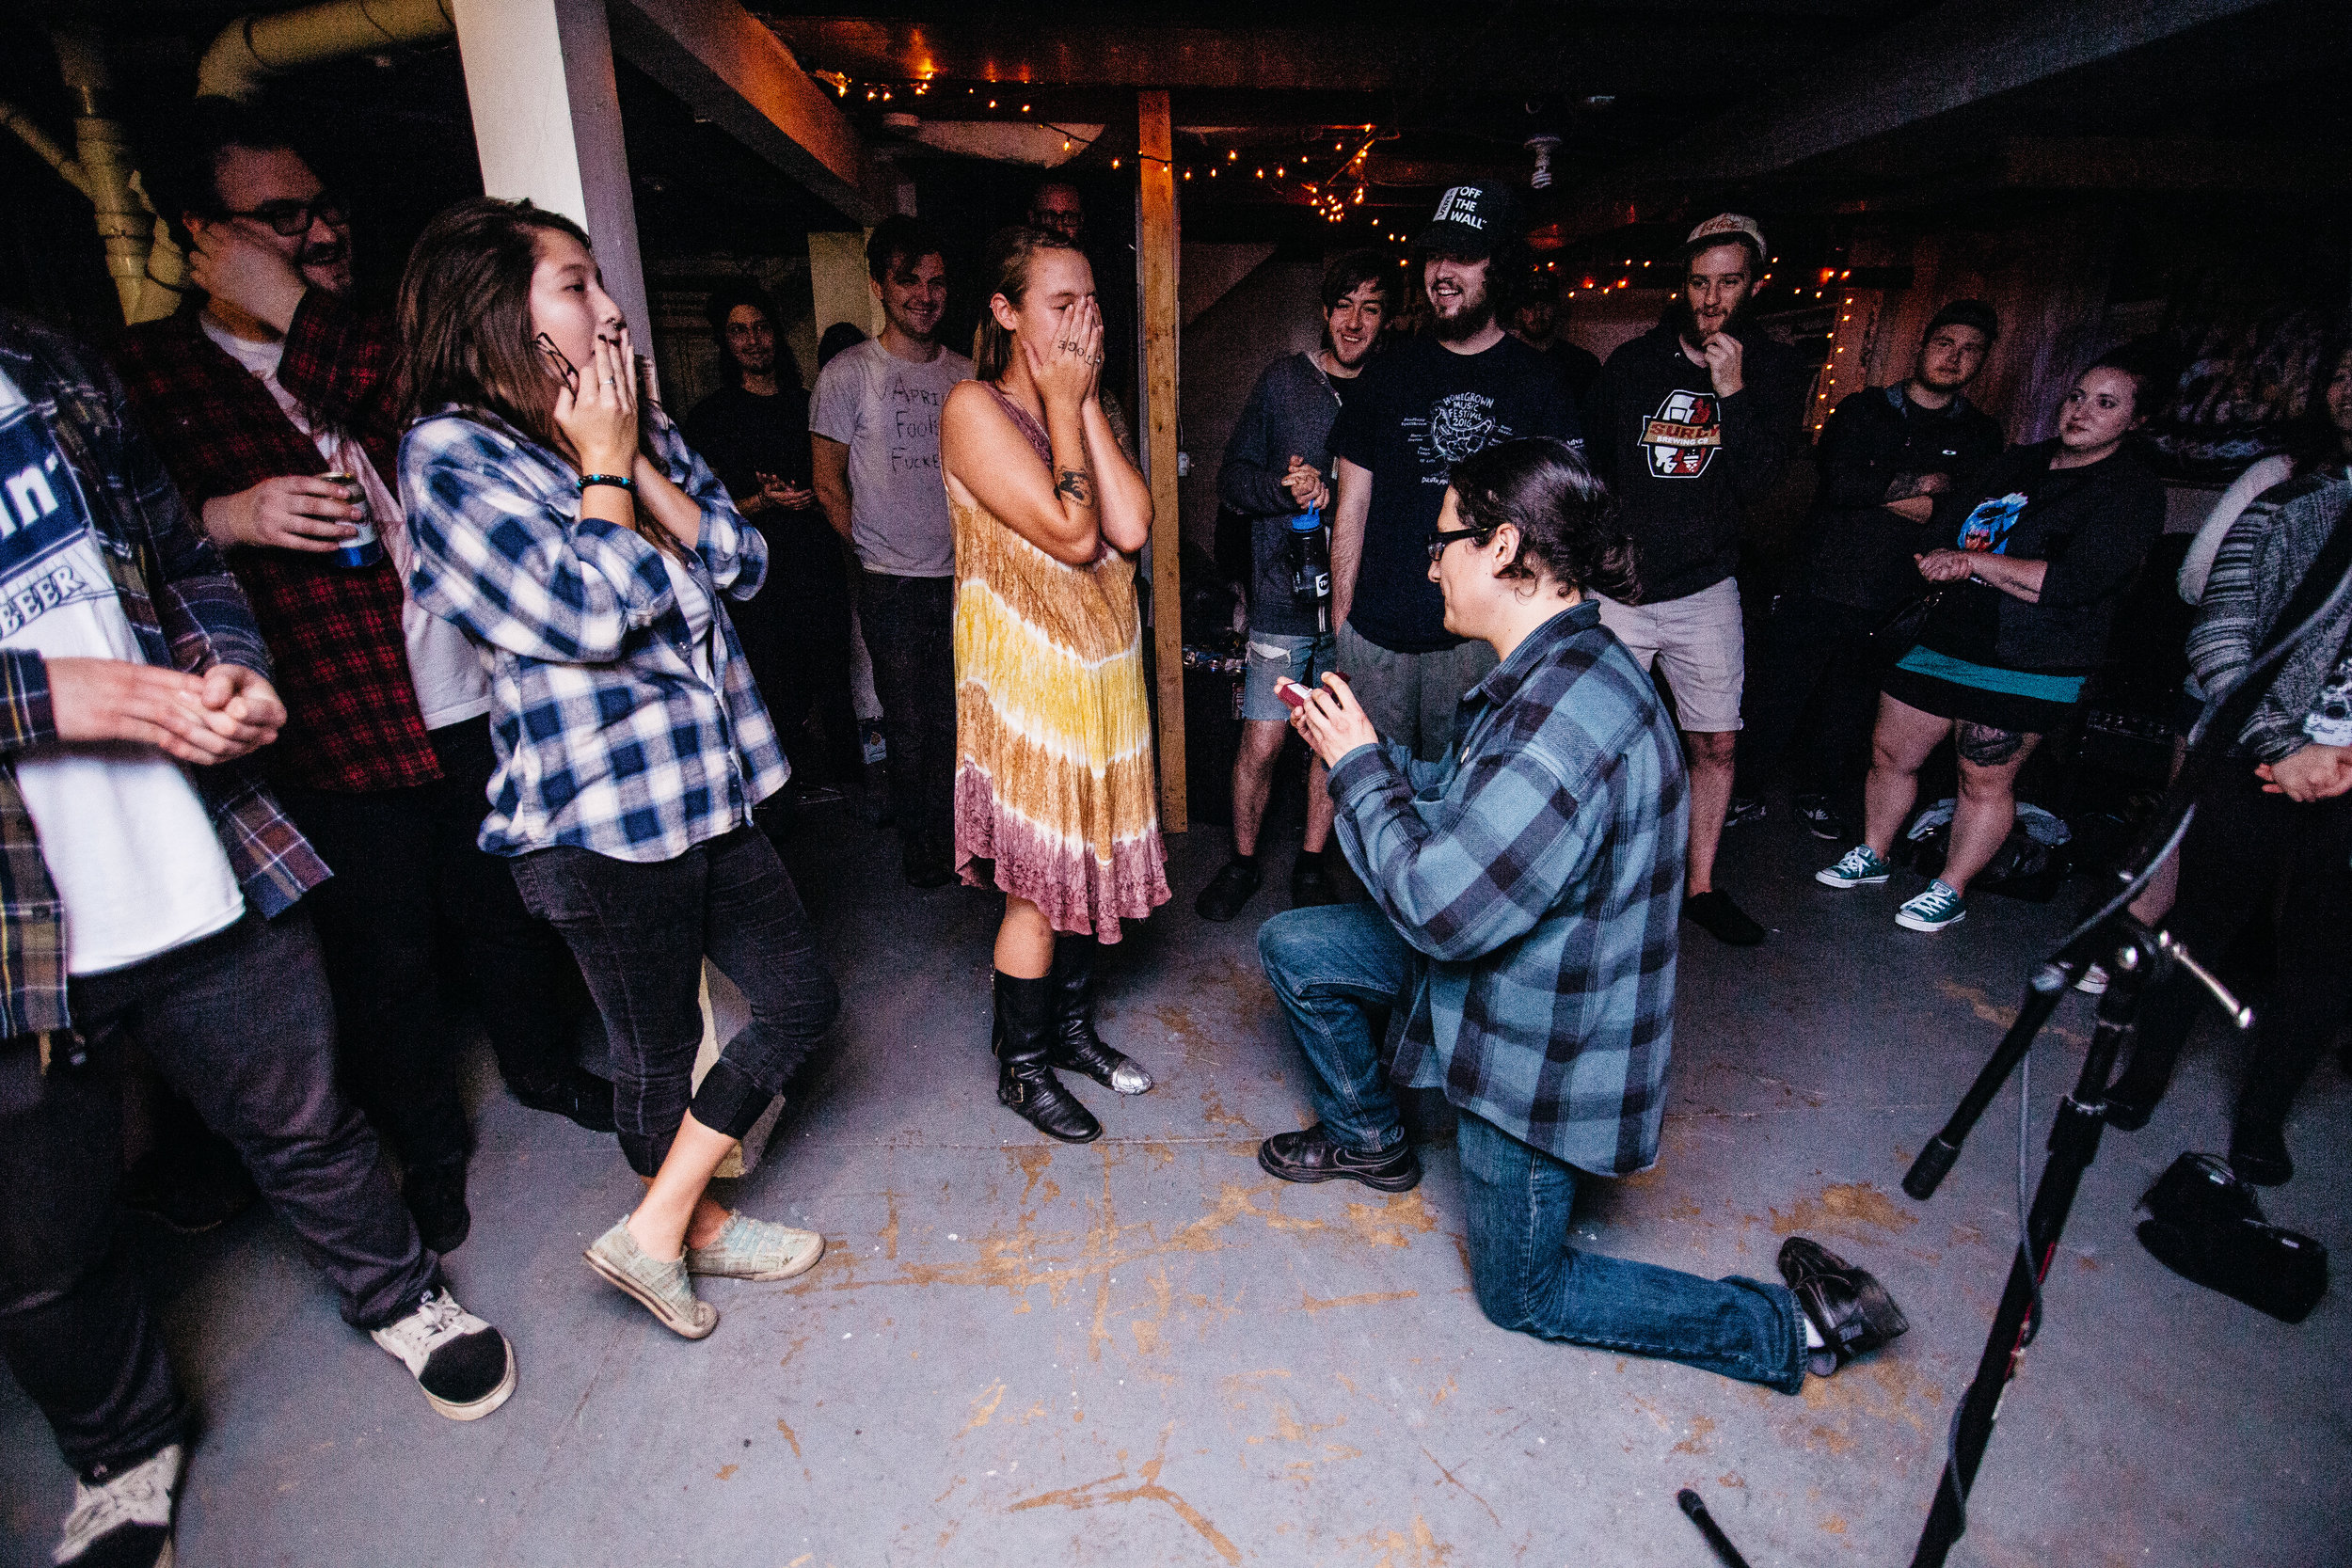 """During the show a couple got engaged. As a special gesture, Signals Midwest performed their song """"Desert to Denver,"""" at their request."""